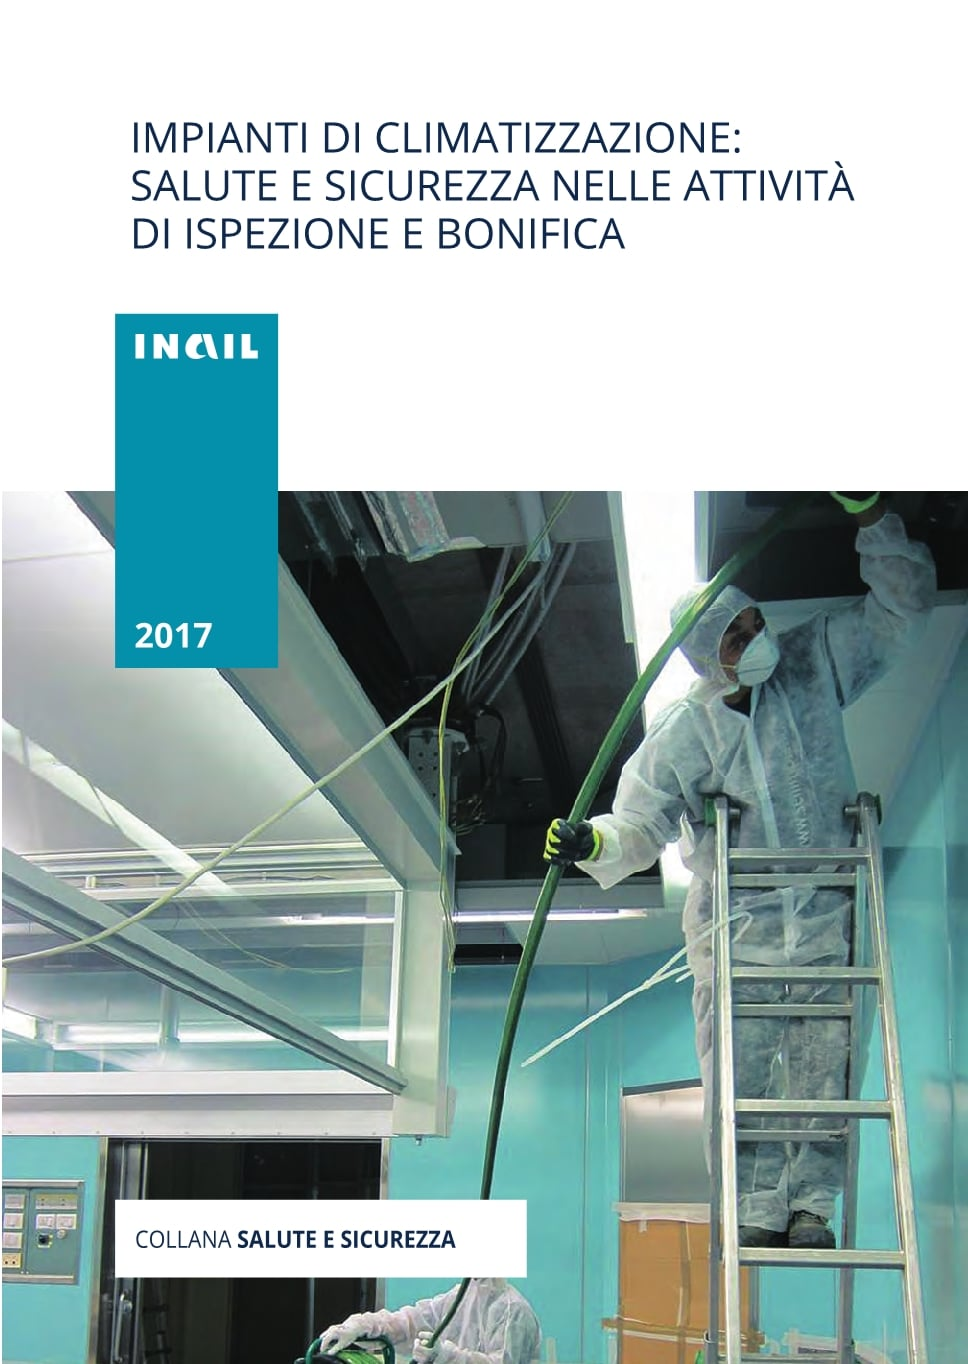 INAIL BOOKLET ABOUT SAFETY